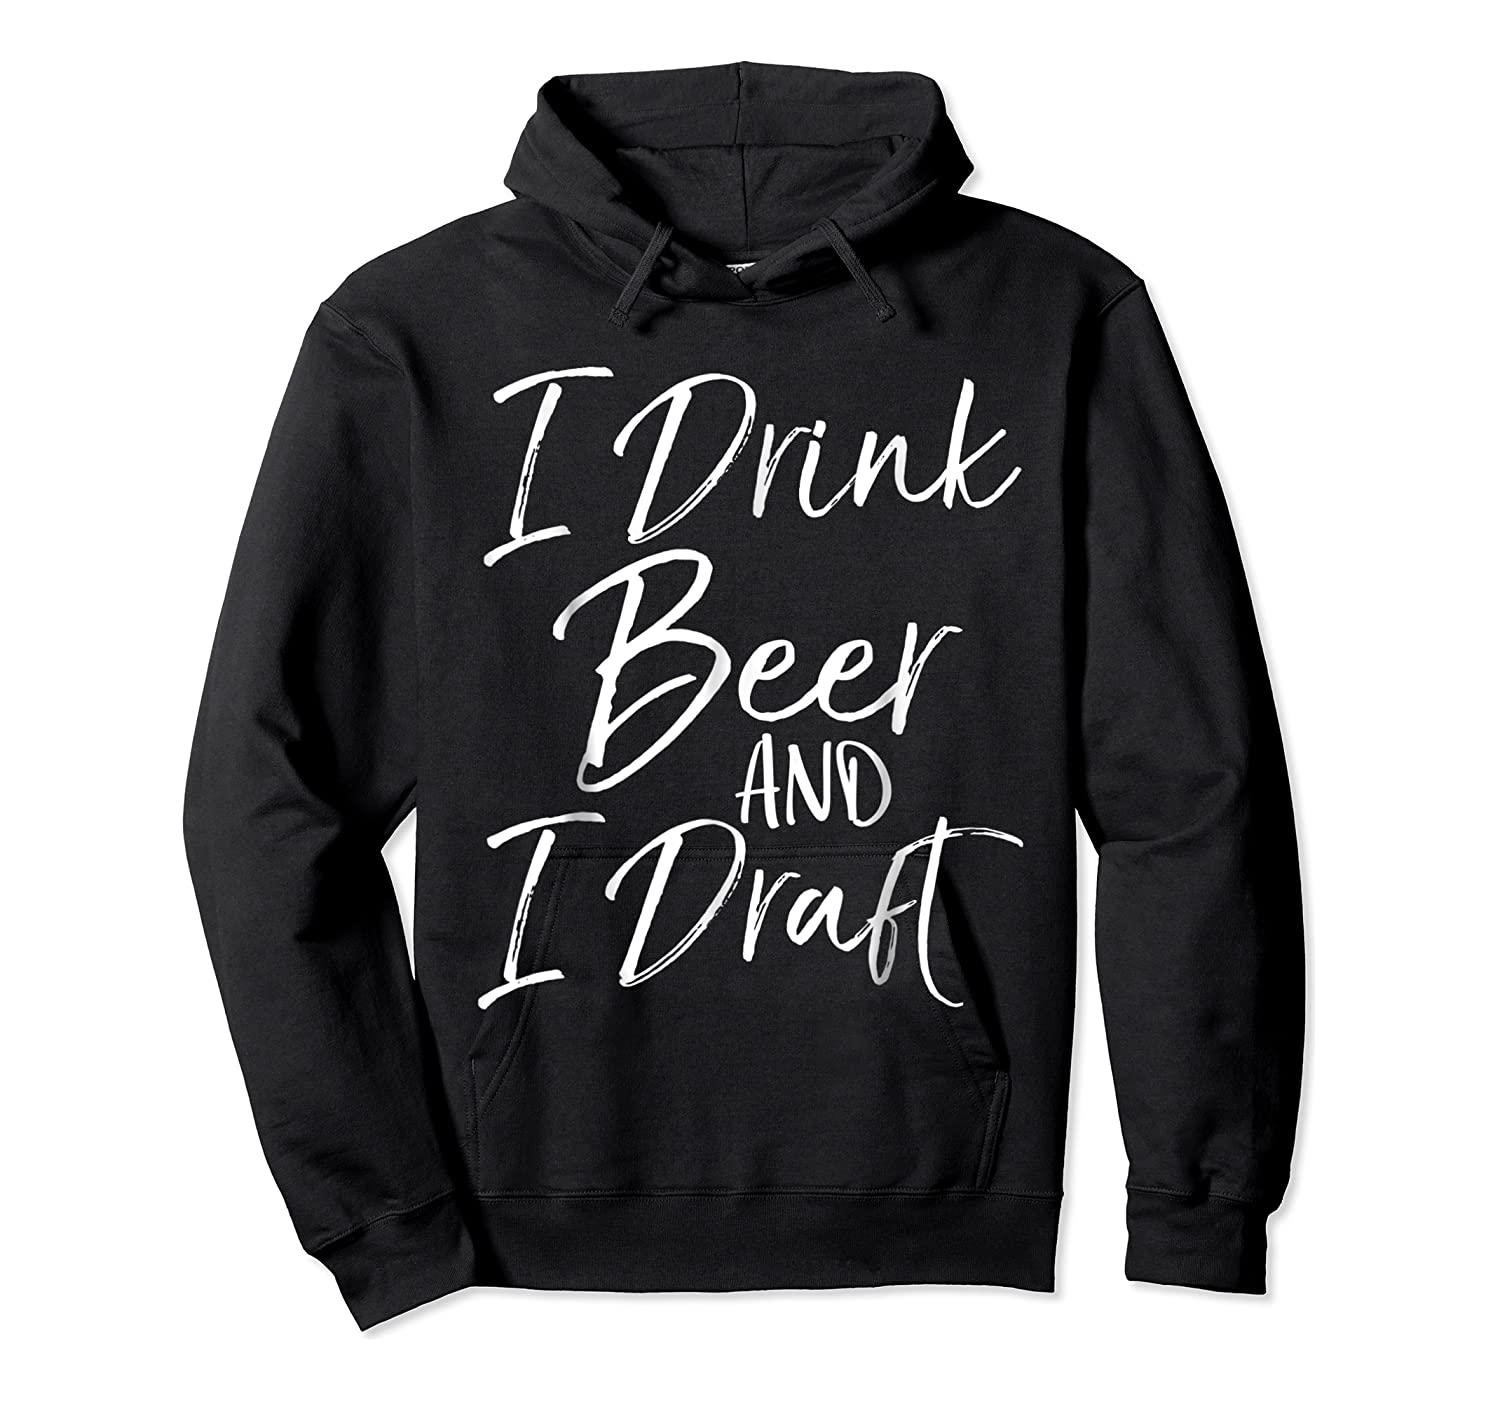 Drink Beer And Draf Funny Fantasy Football Shirts Unisex Pullover Hoodie